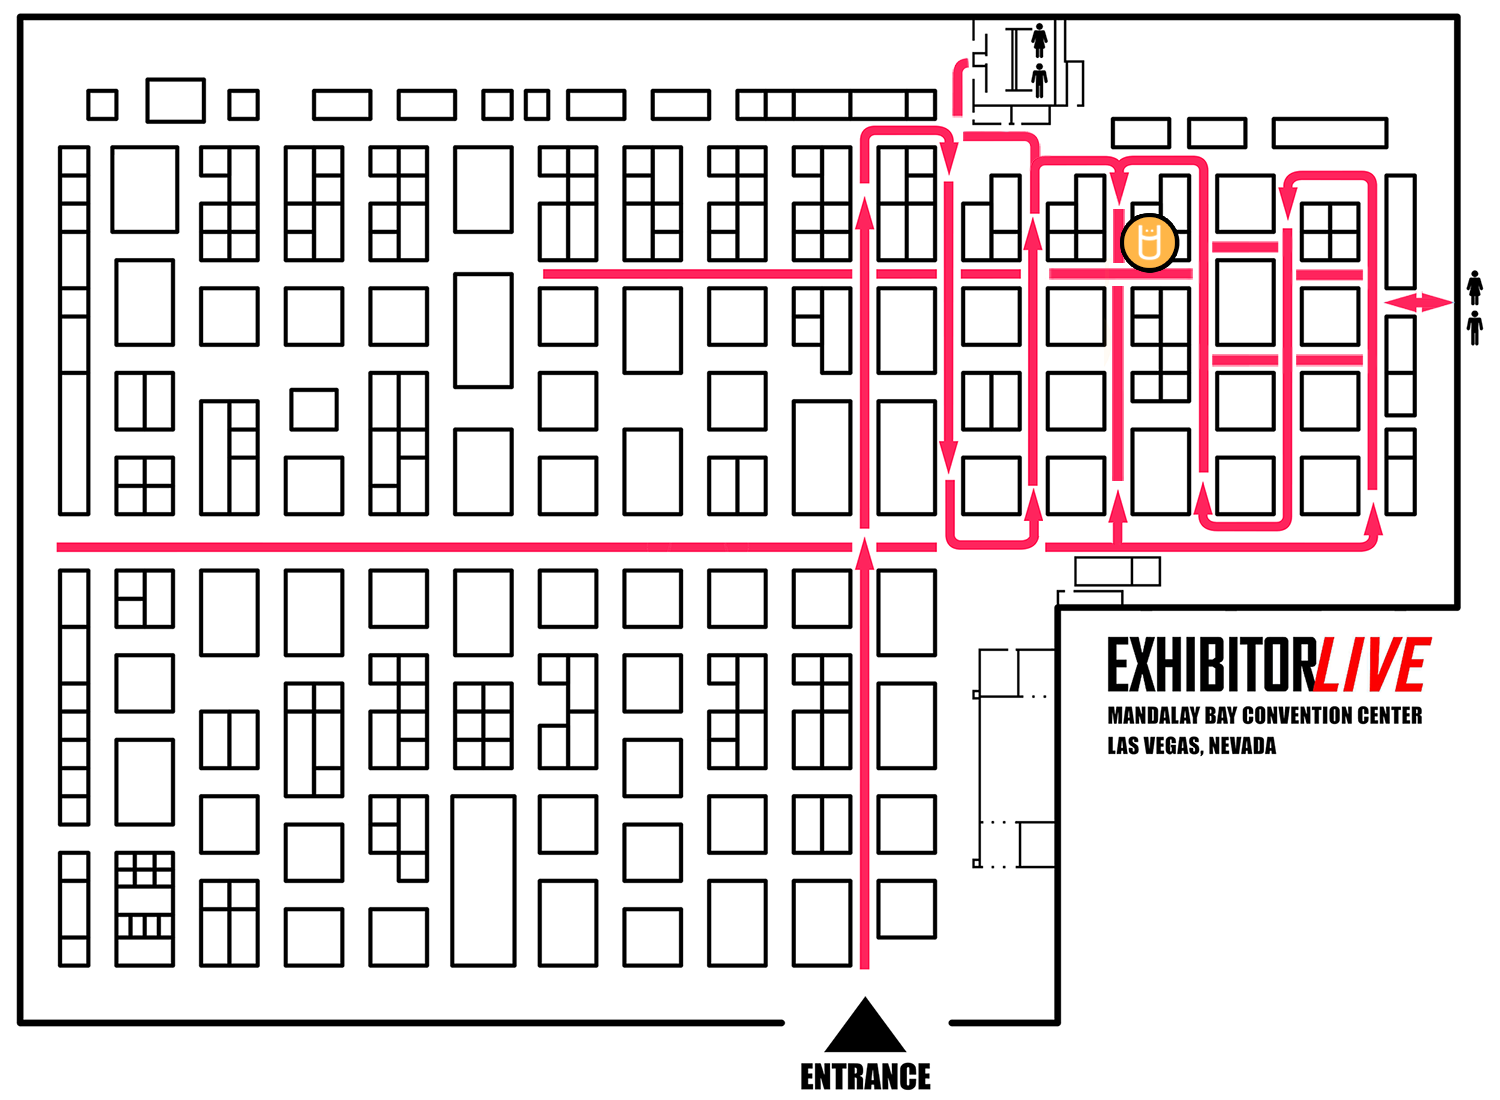 Trade Show Floor Plan Routes